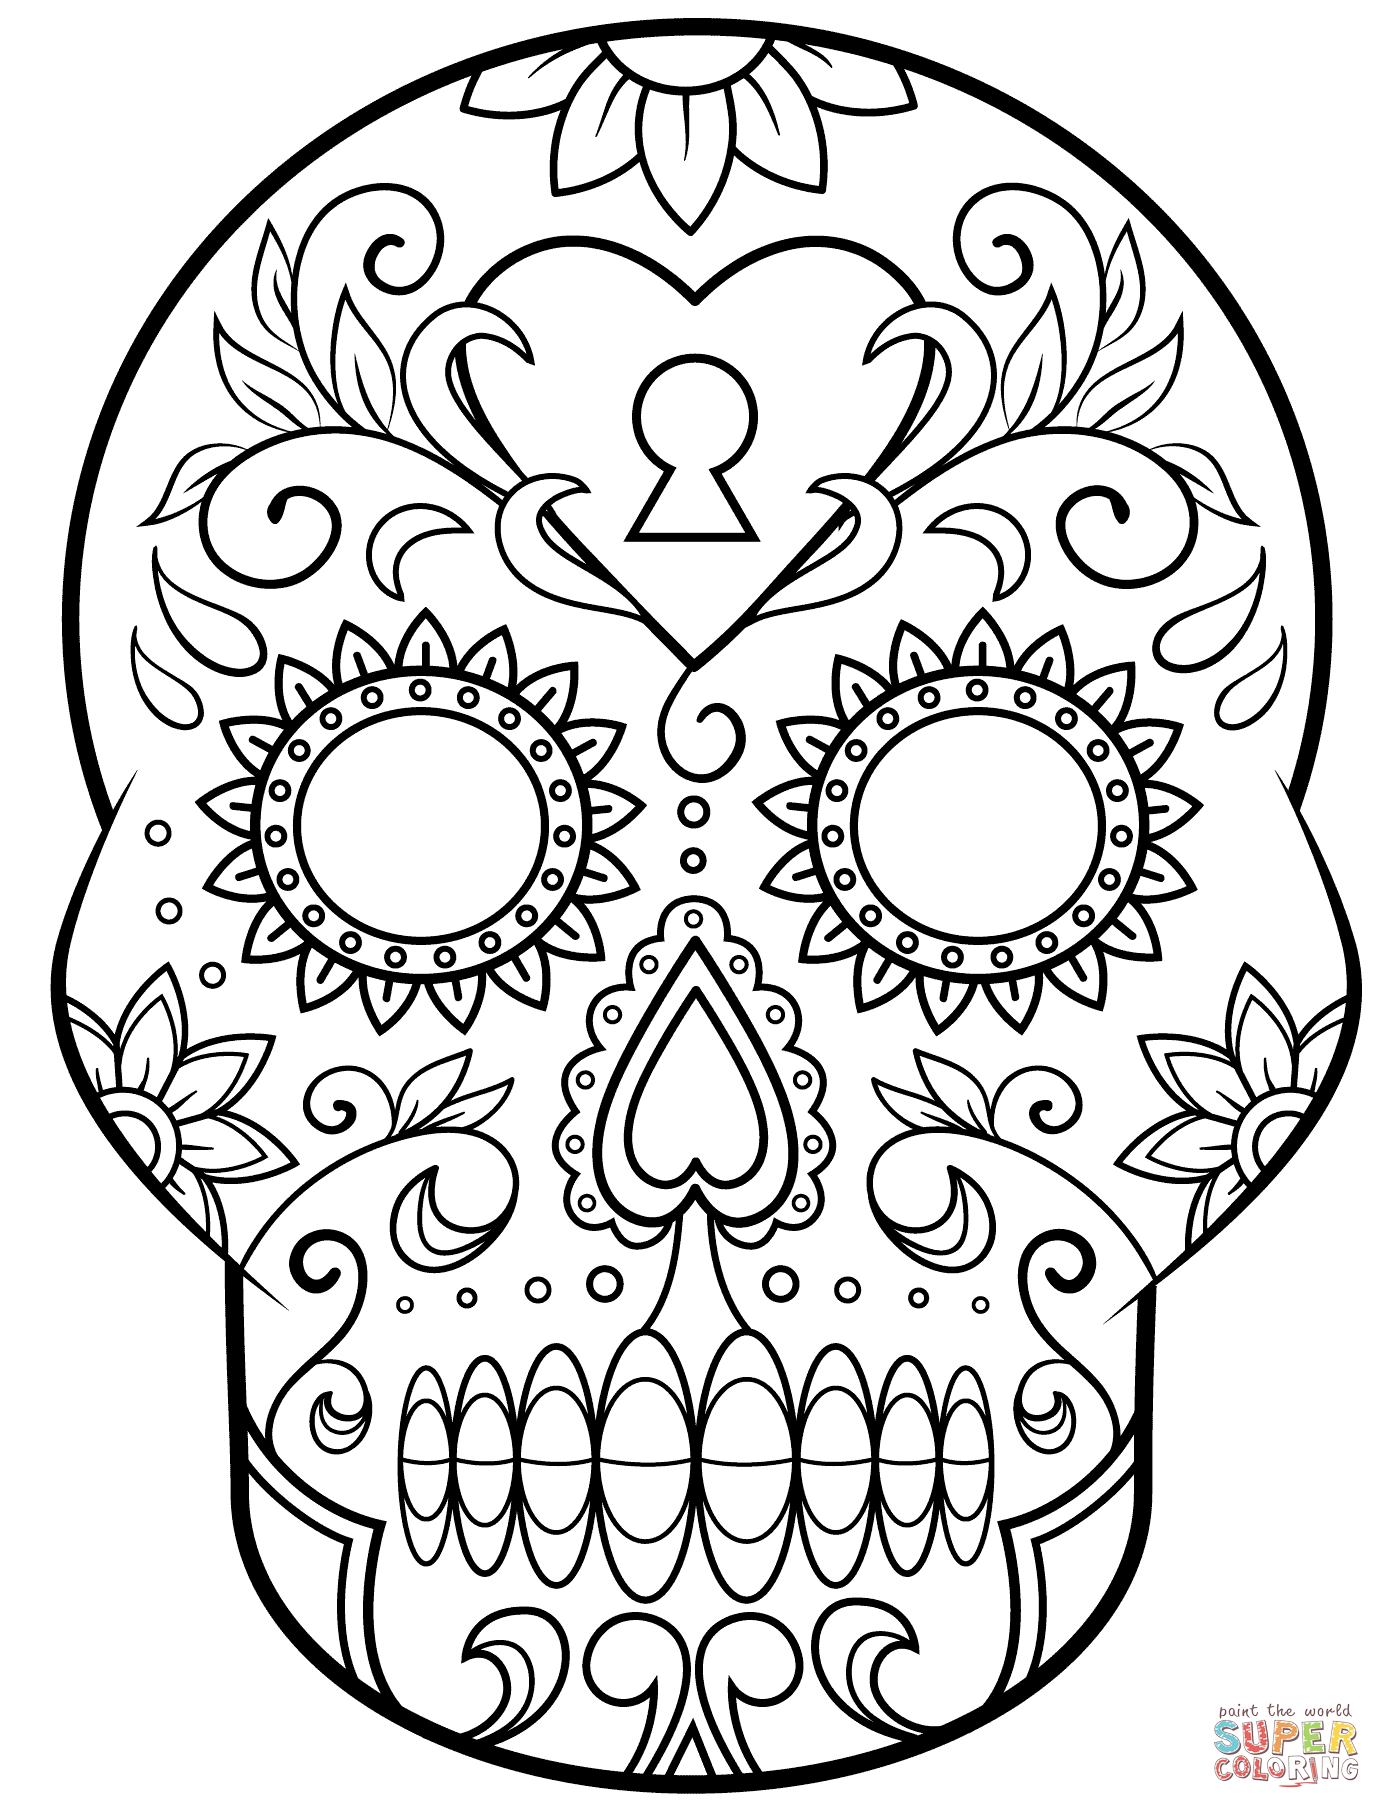 free printable sugar skull coloring pages Day of the Dead Sugar Skull coloring page | Free Printable  free printable sugar skull coloring pages